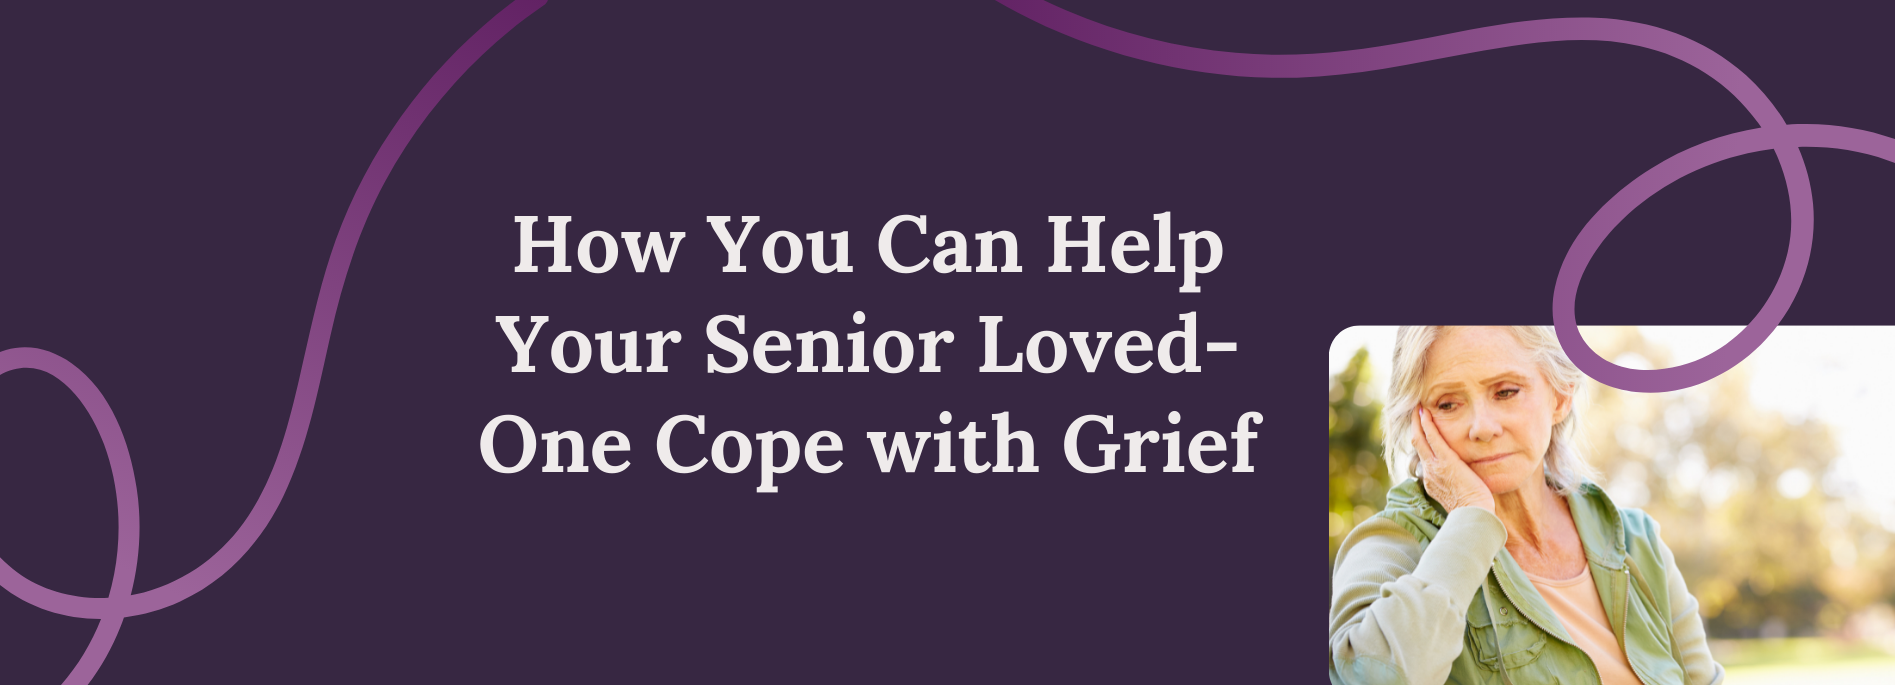 How Can you Help Your Senior Loved One Cope With Grief